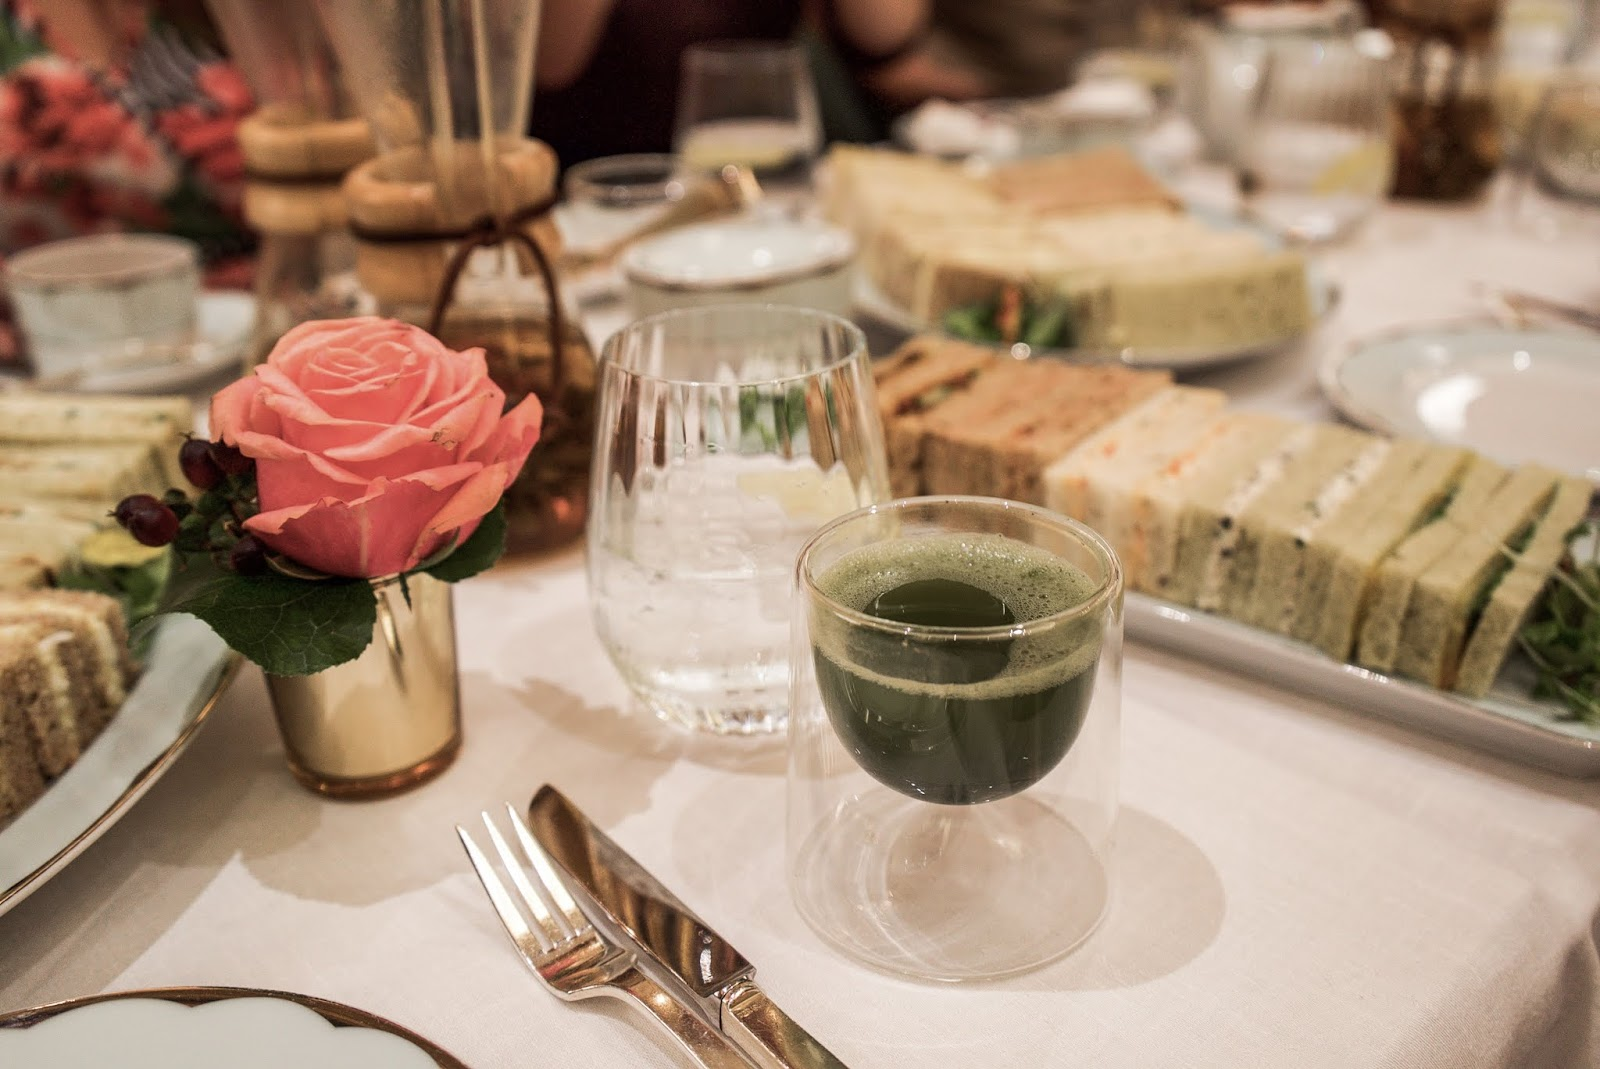 Afternoon Tea, The Promenade At The Dorchester, London. Lauren Rose Style Blogger.